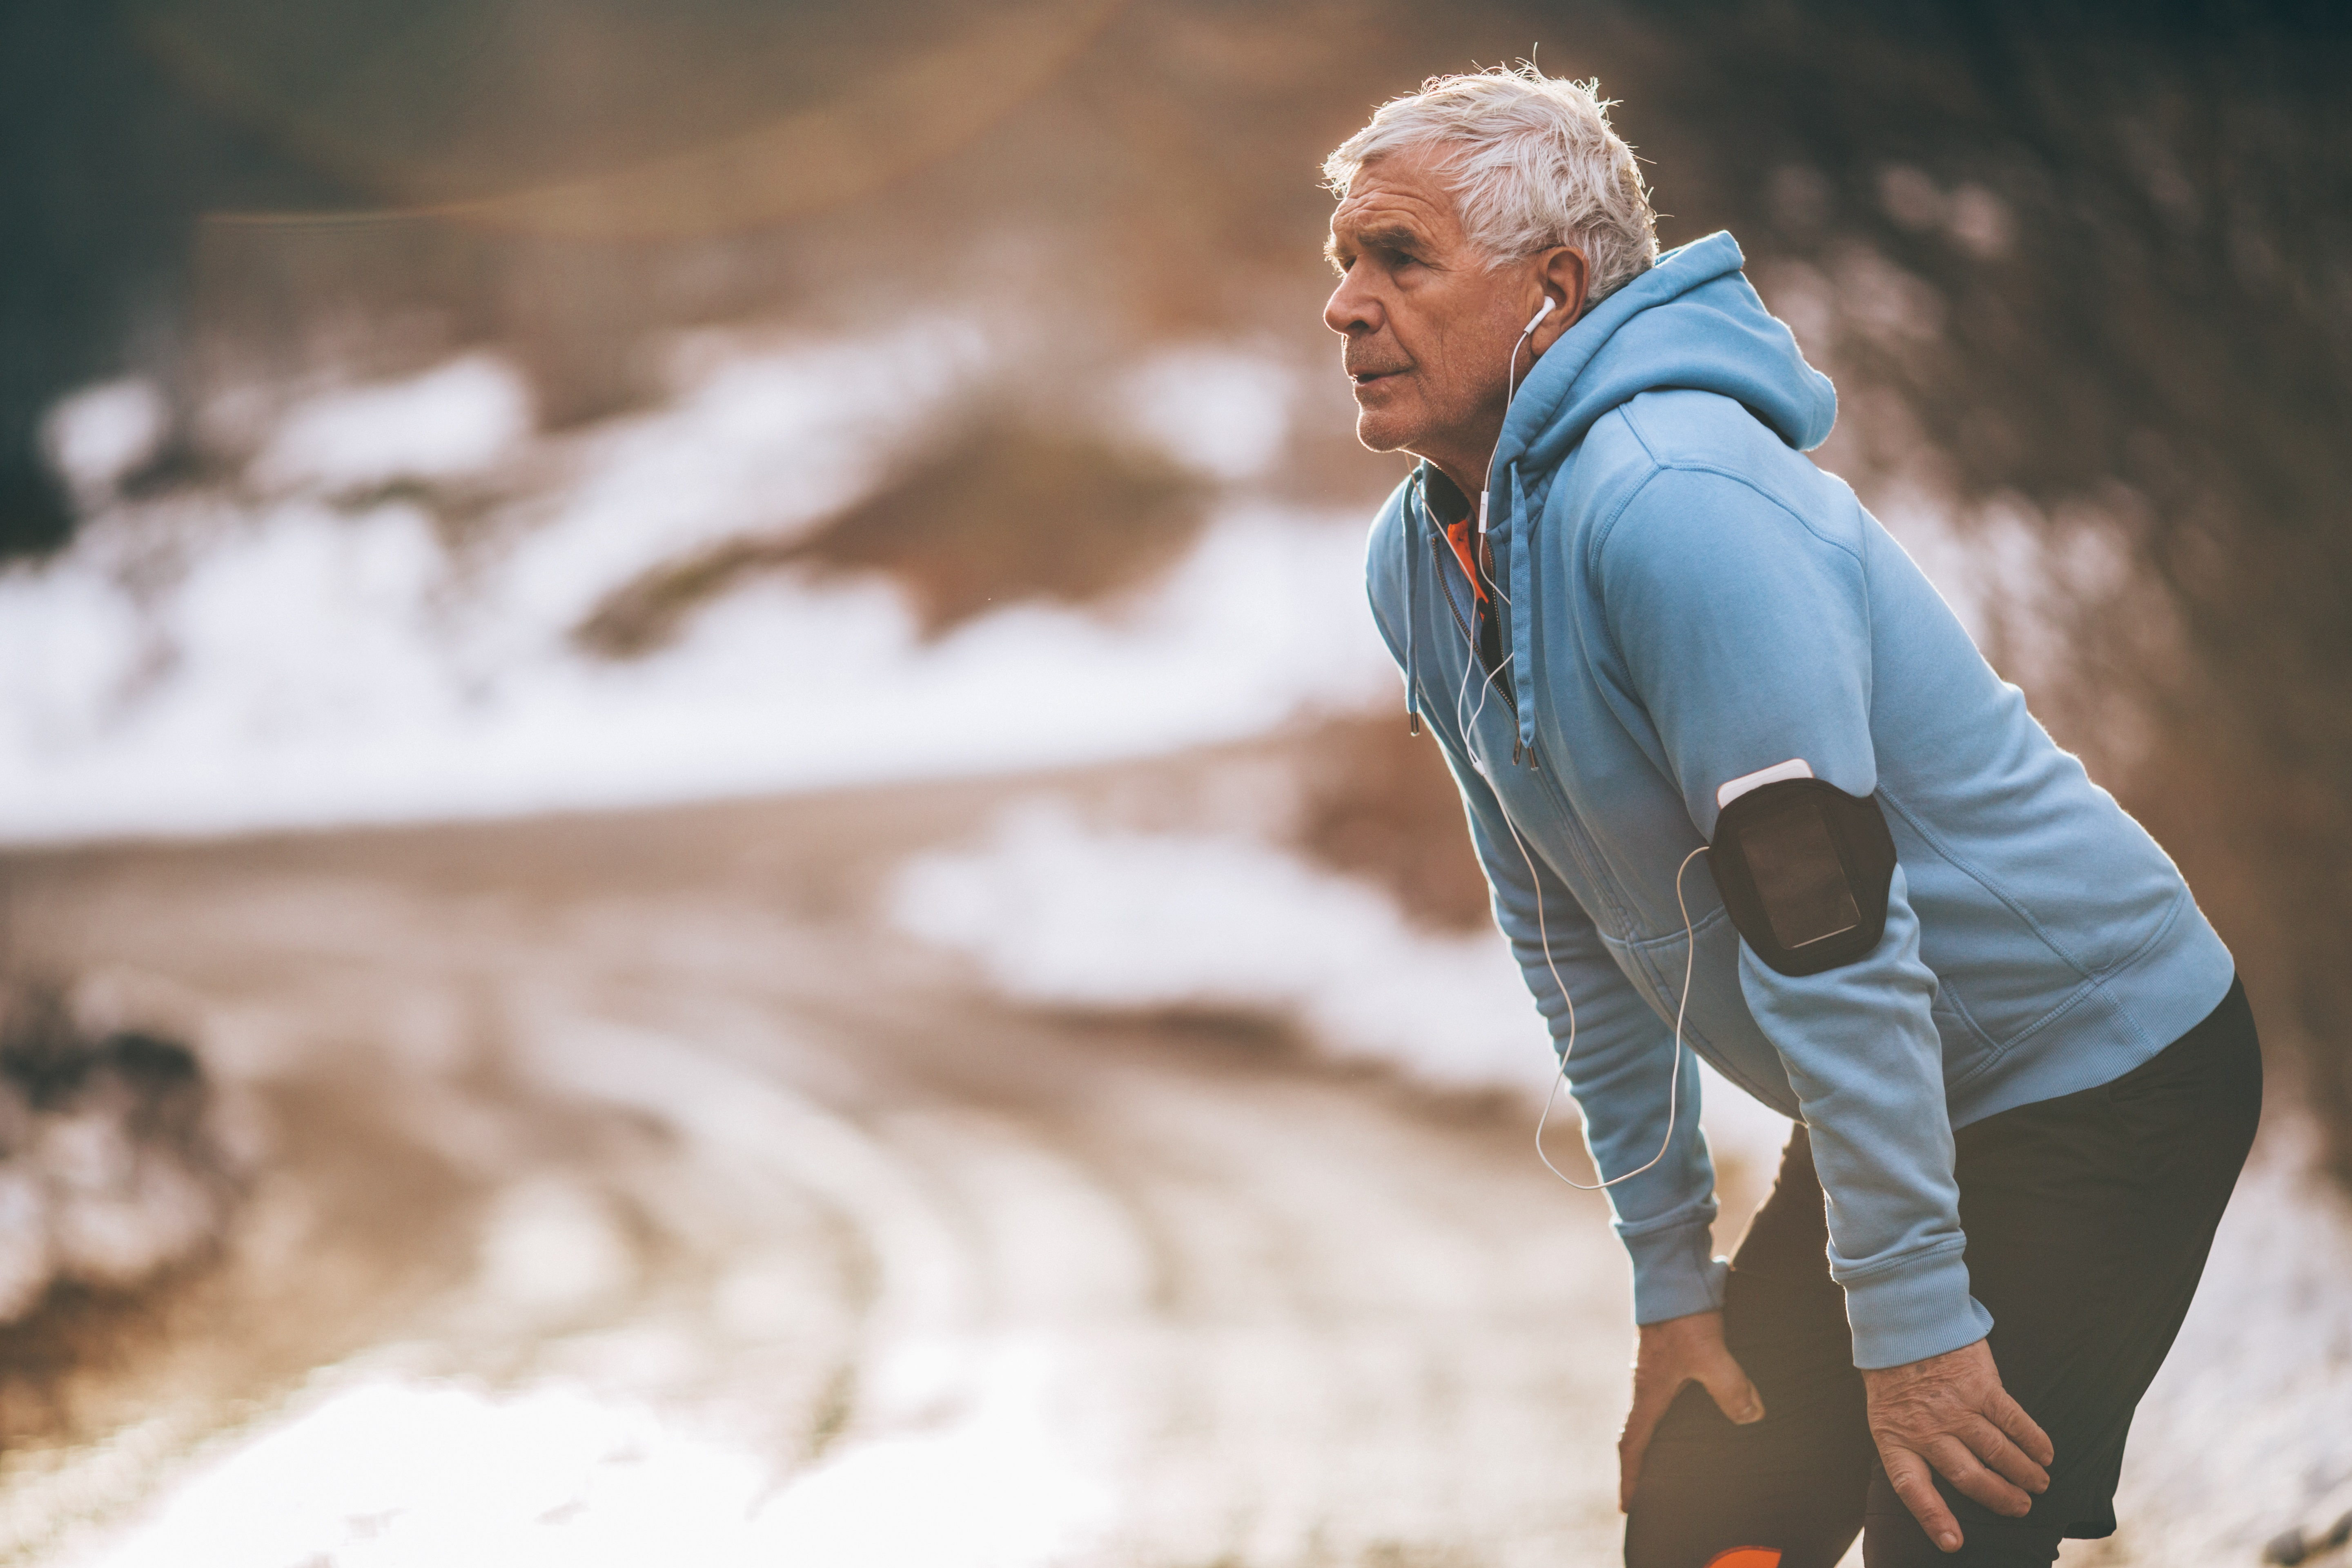 An older man exercising in the winter